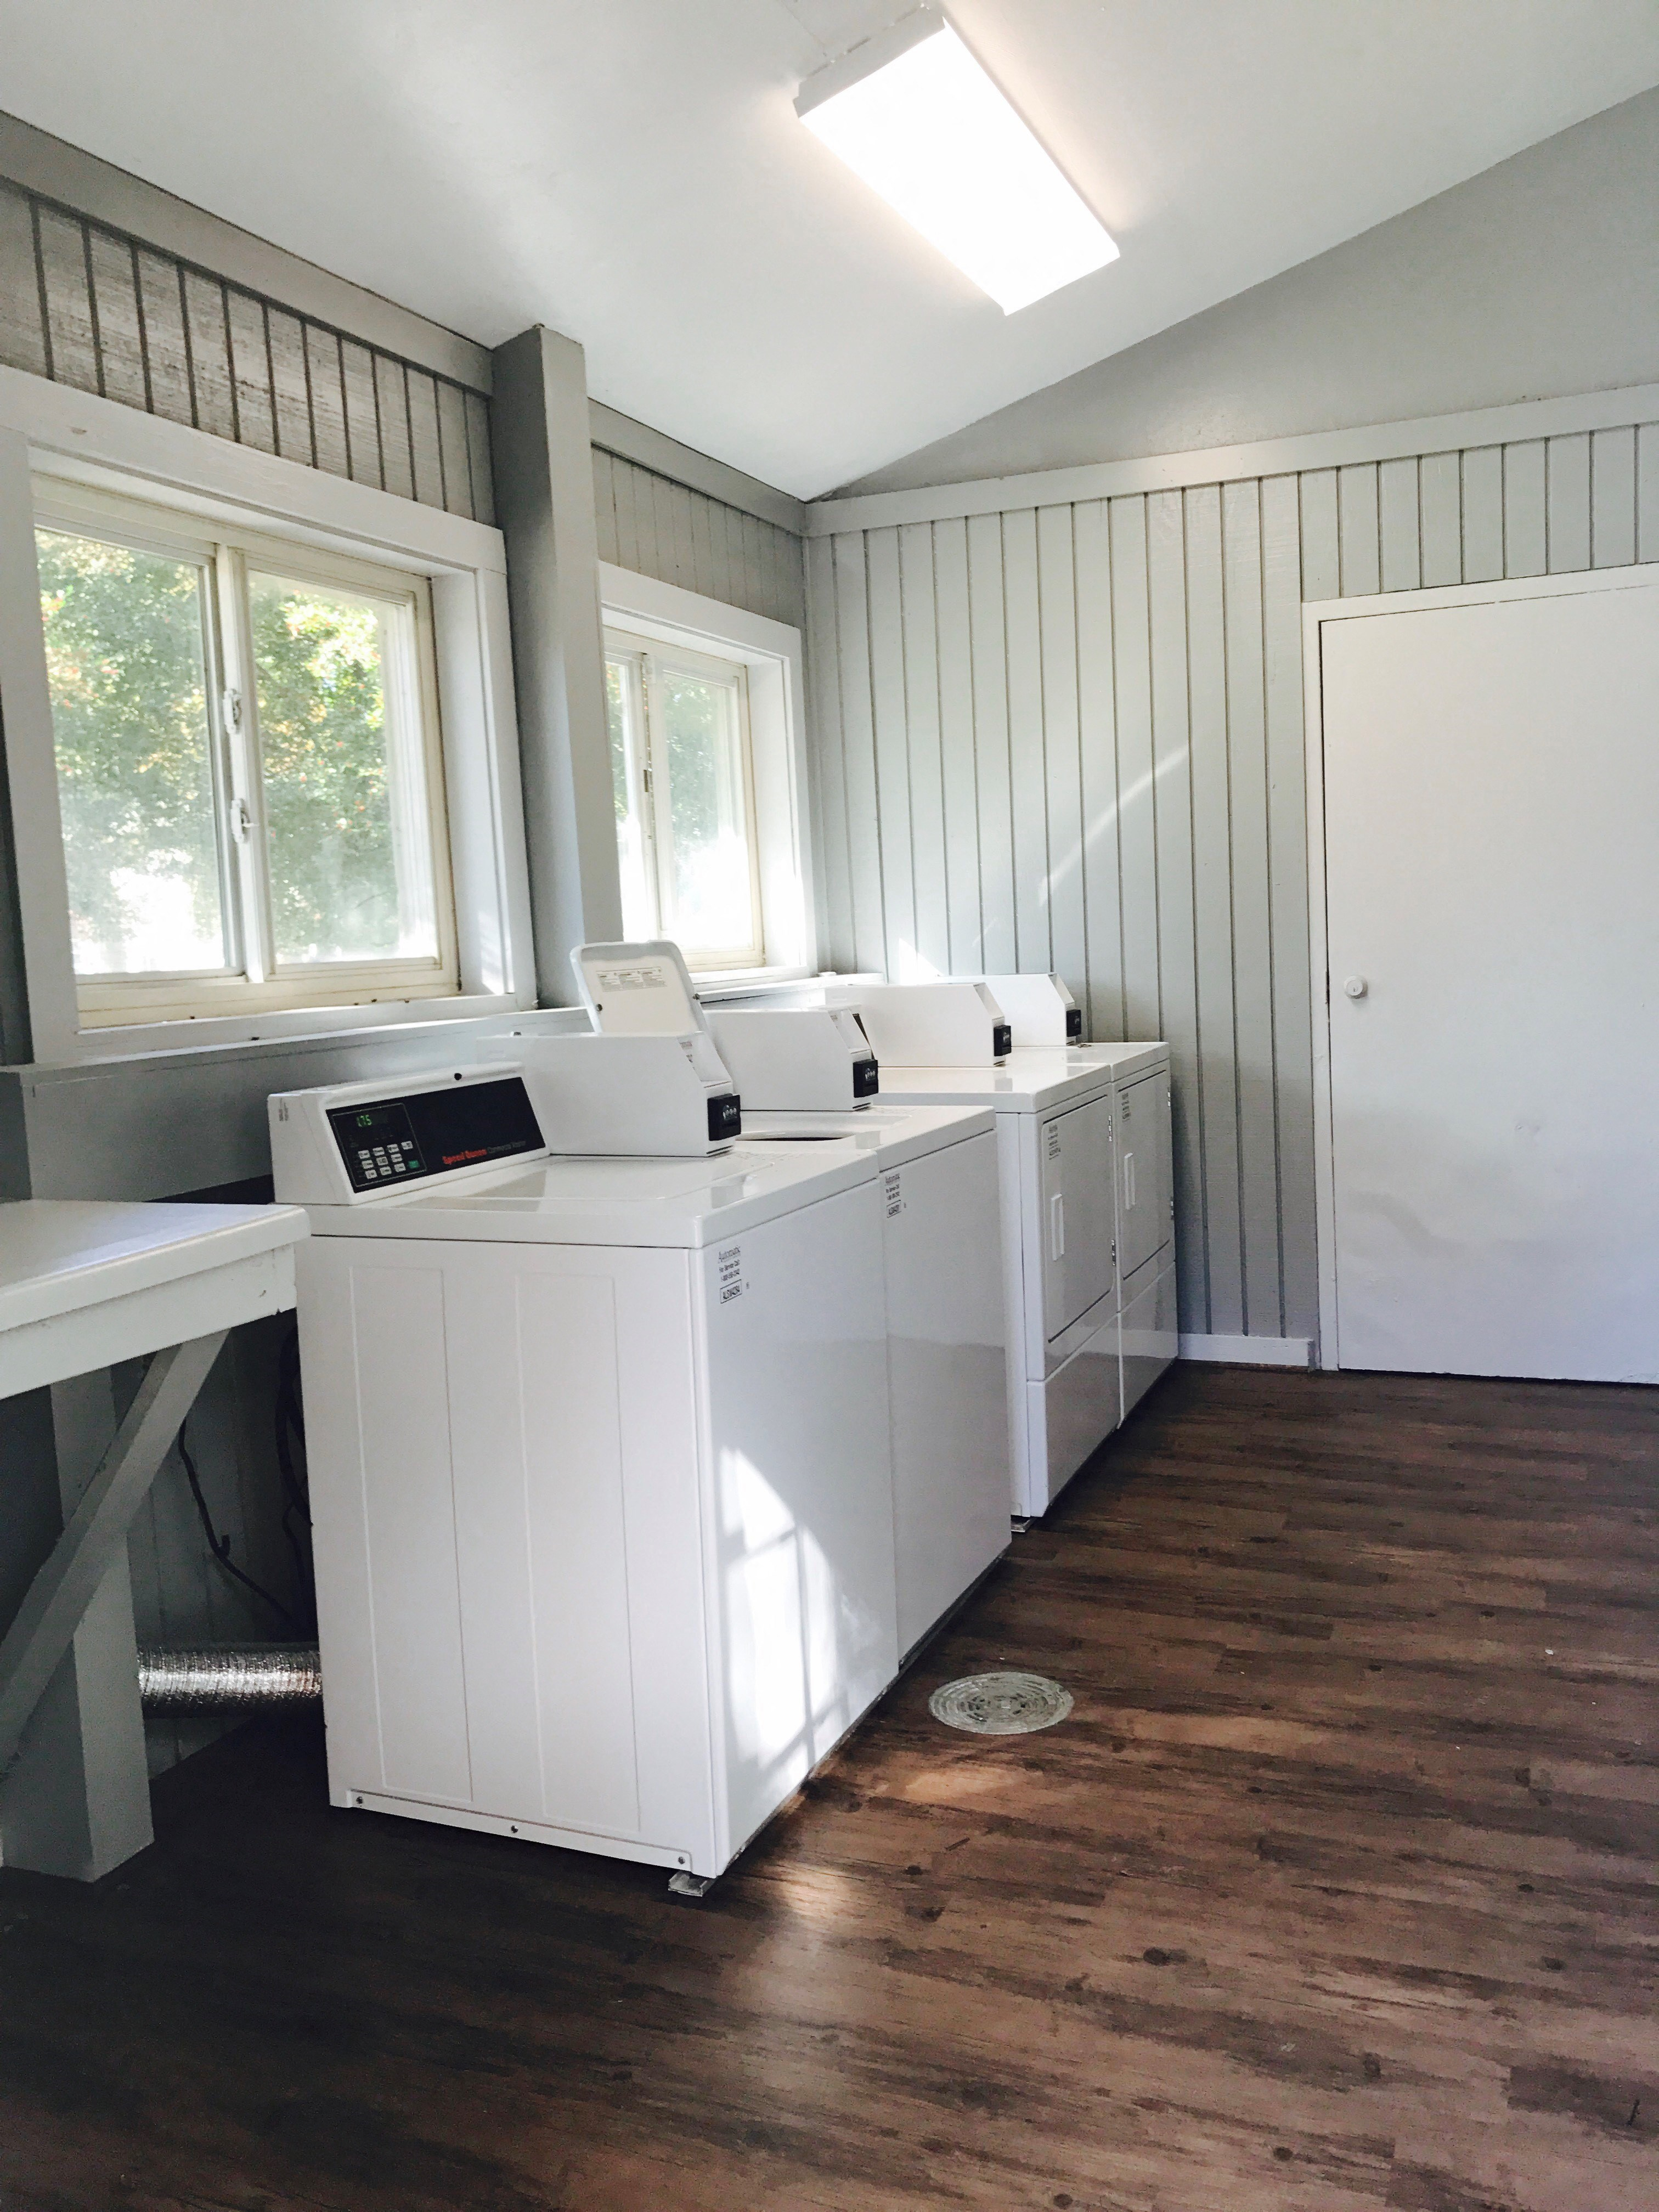 A laundry room featuring white washers and dryers, wooden floors, and grey walls